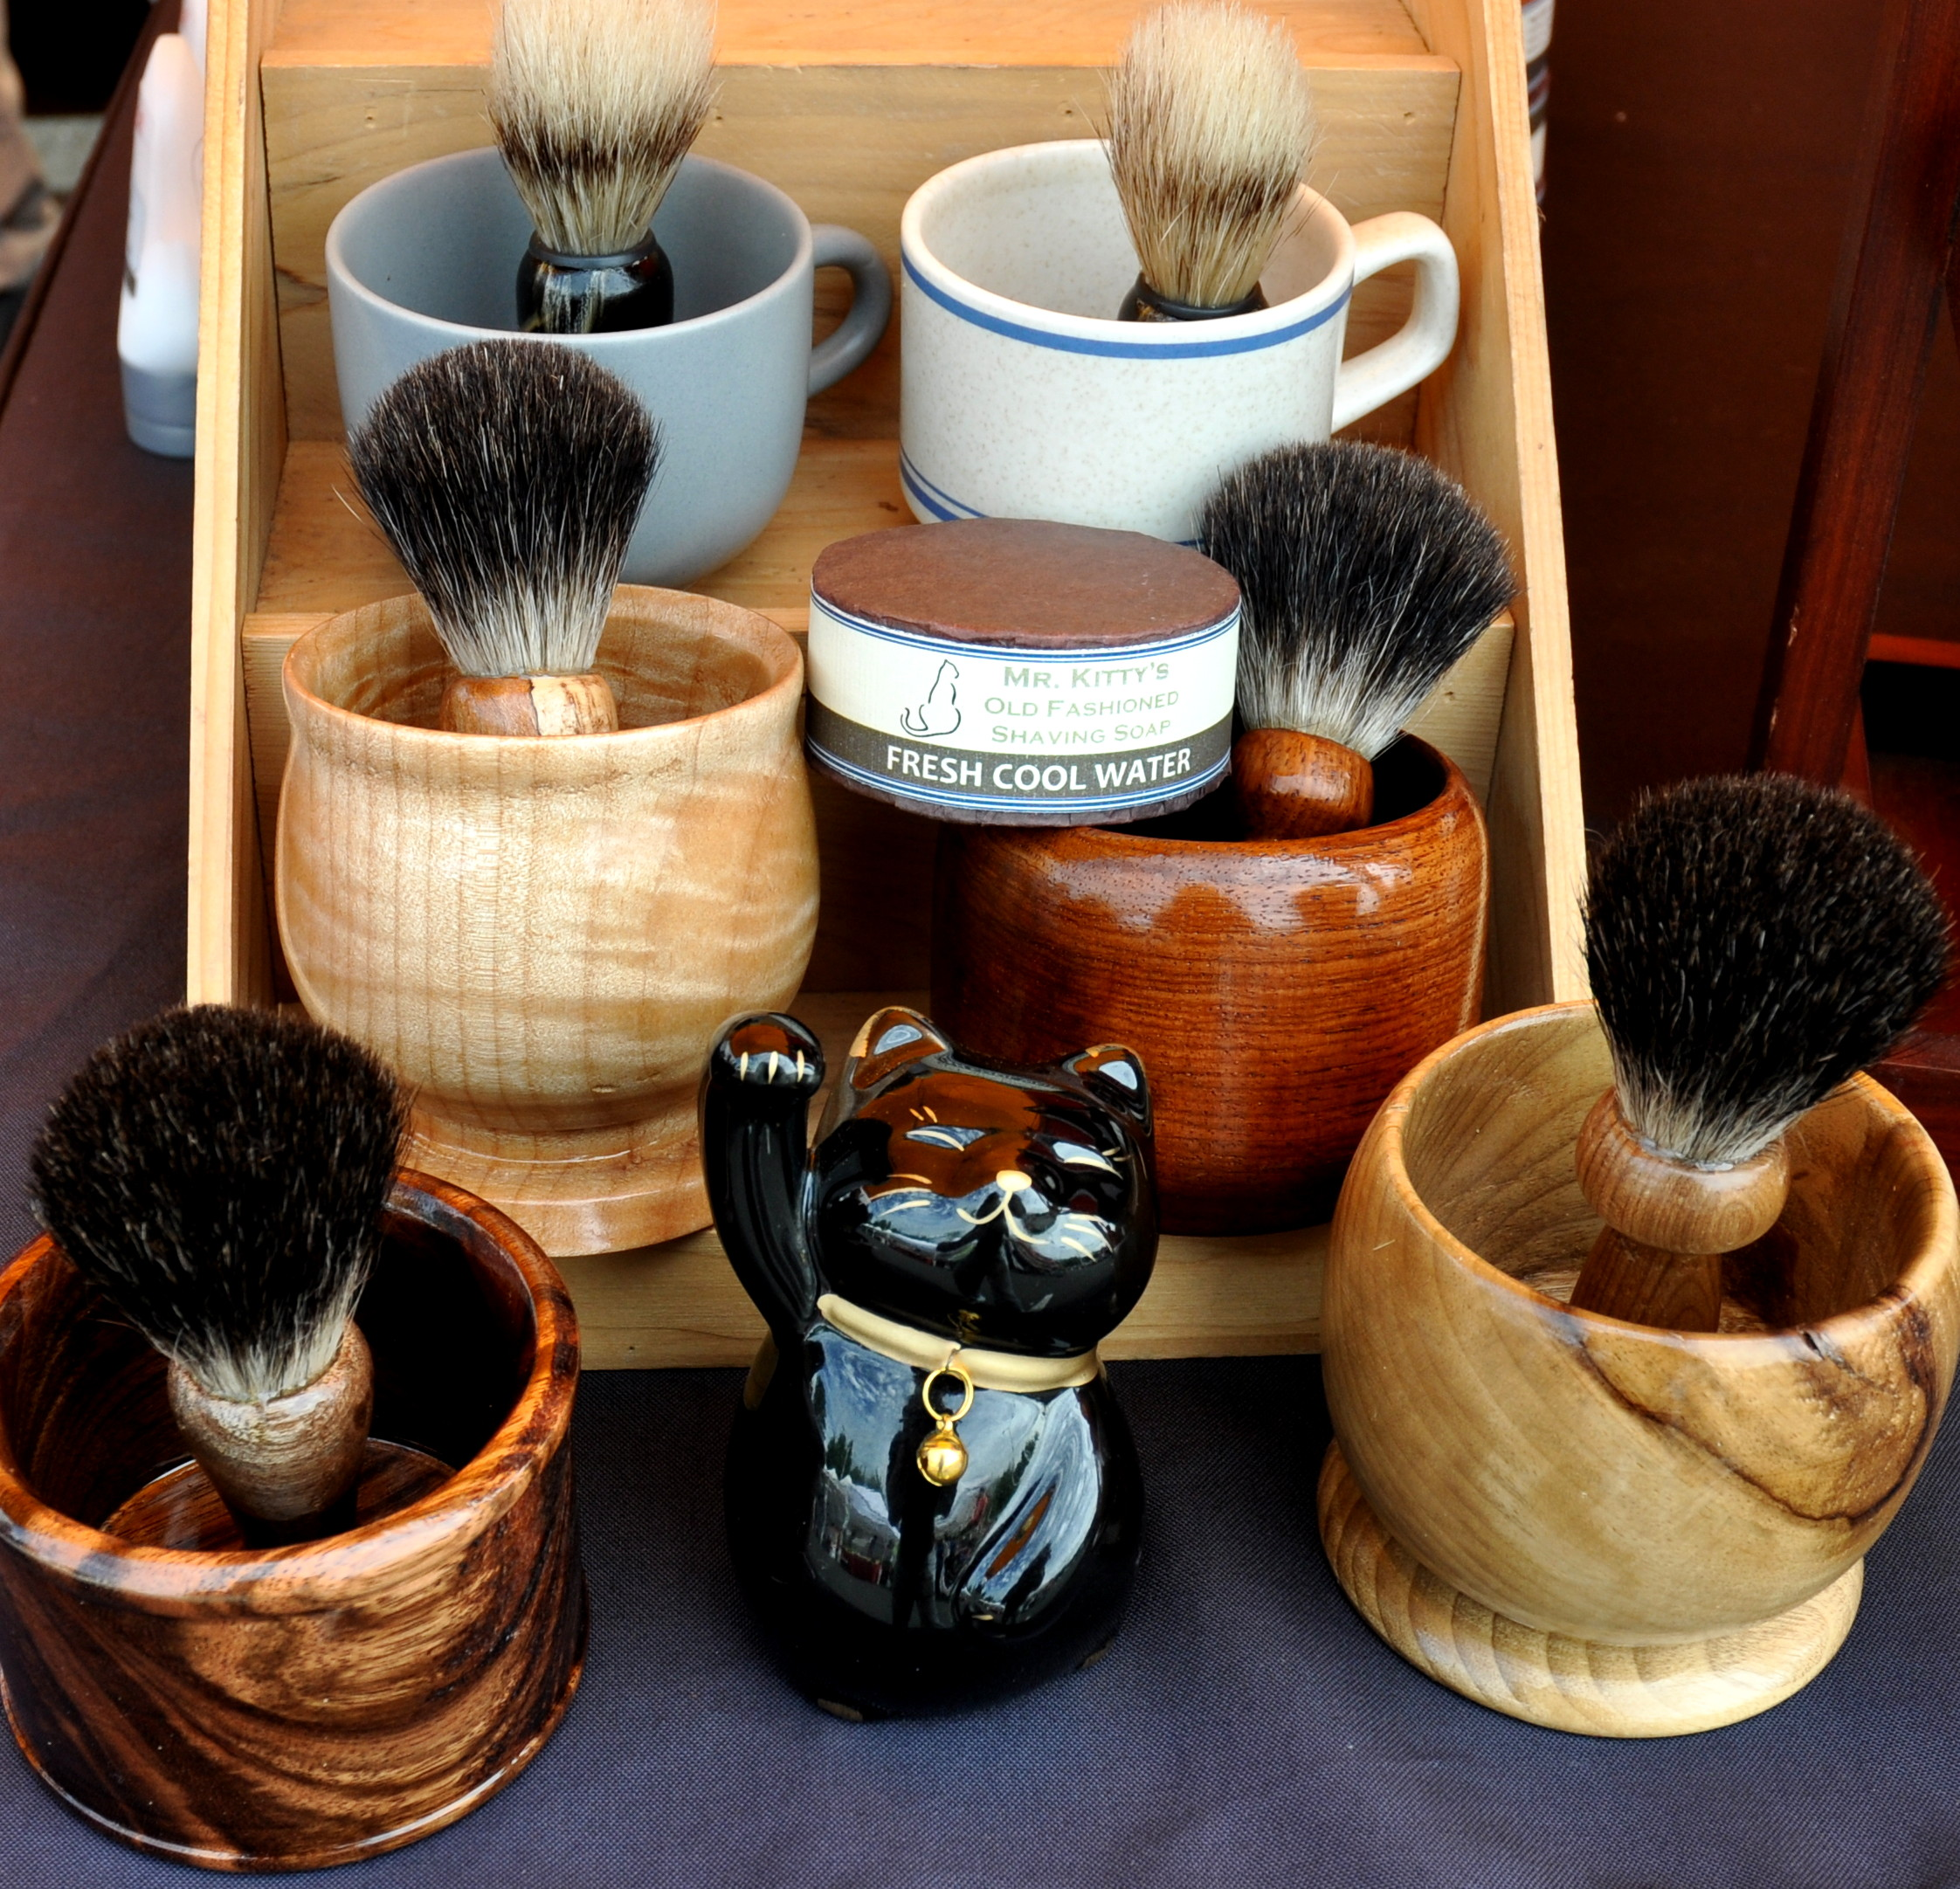 Shaving soap, mugs and brushes from Mr. Kitty's Soap Shop. Photo copyright 2012 by Zachary D. Lyons.